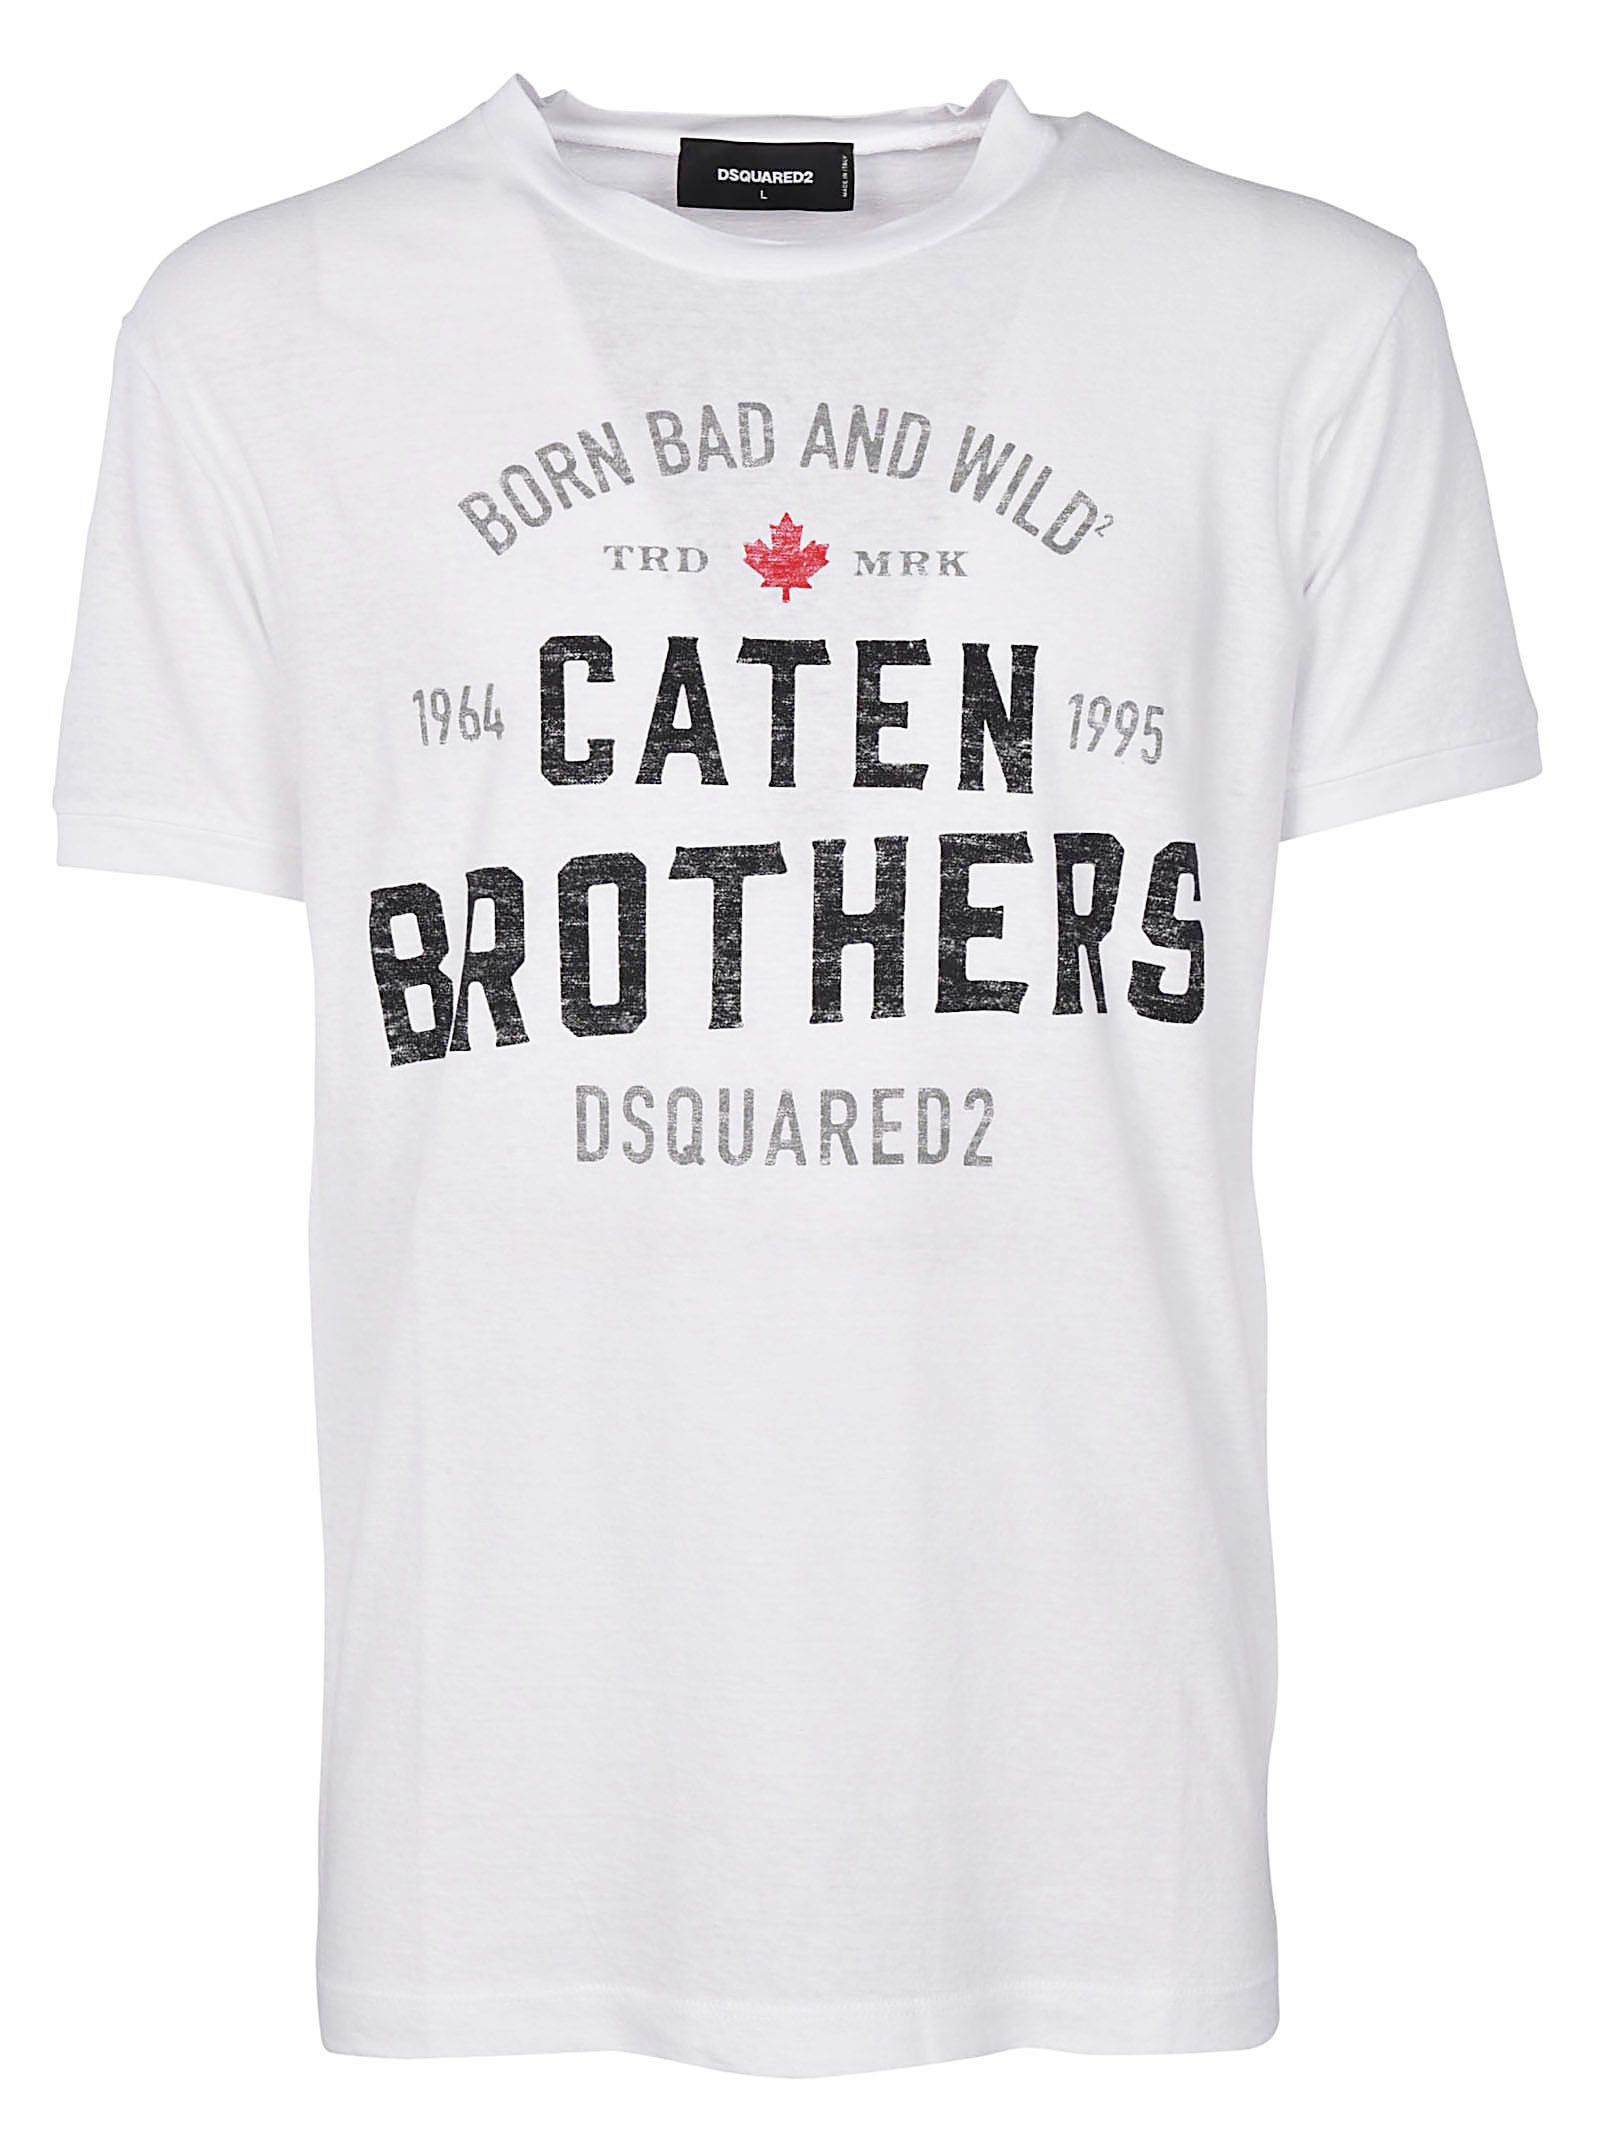 Dsquared2 Caten Brothers Print T-shirt